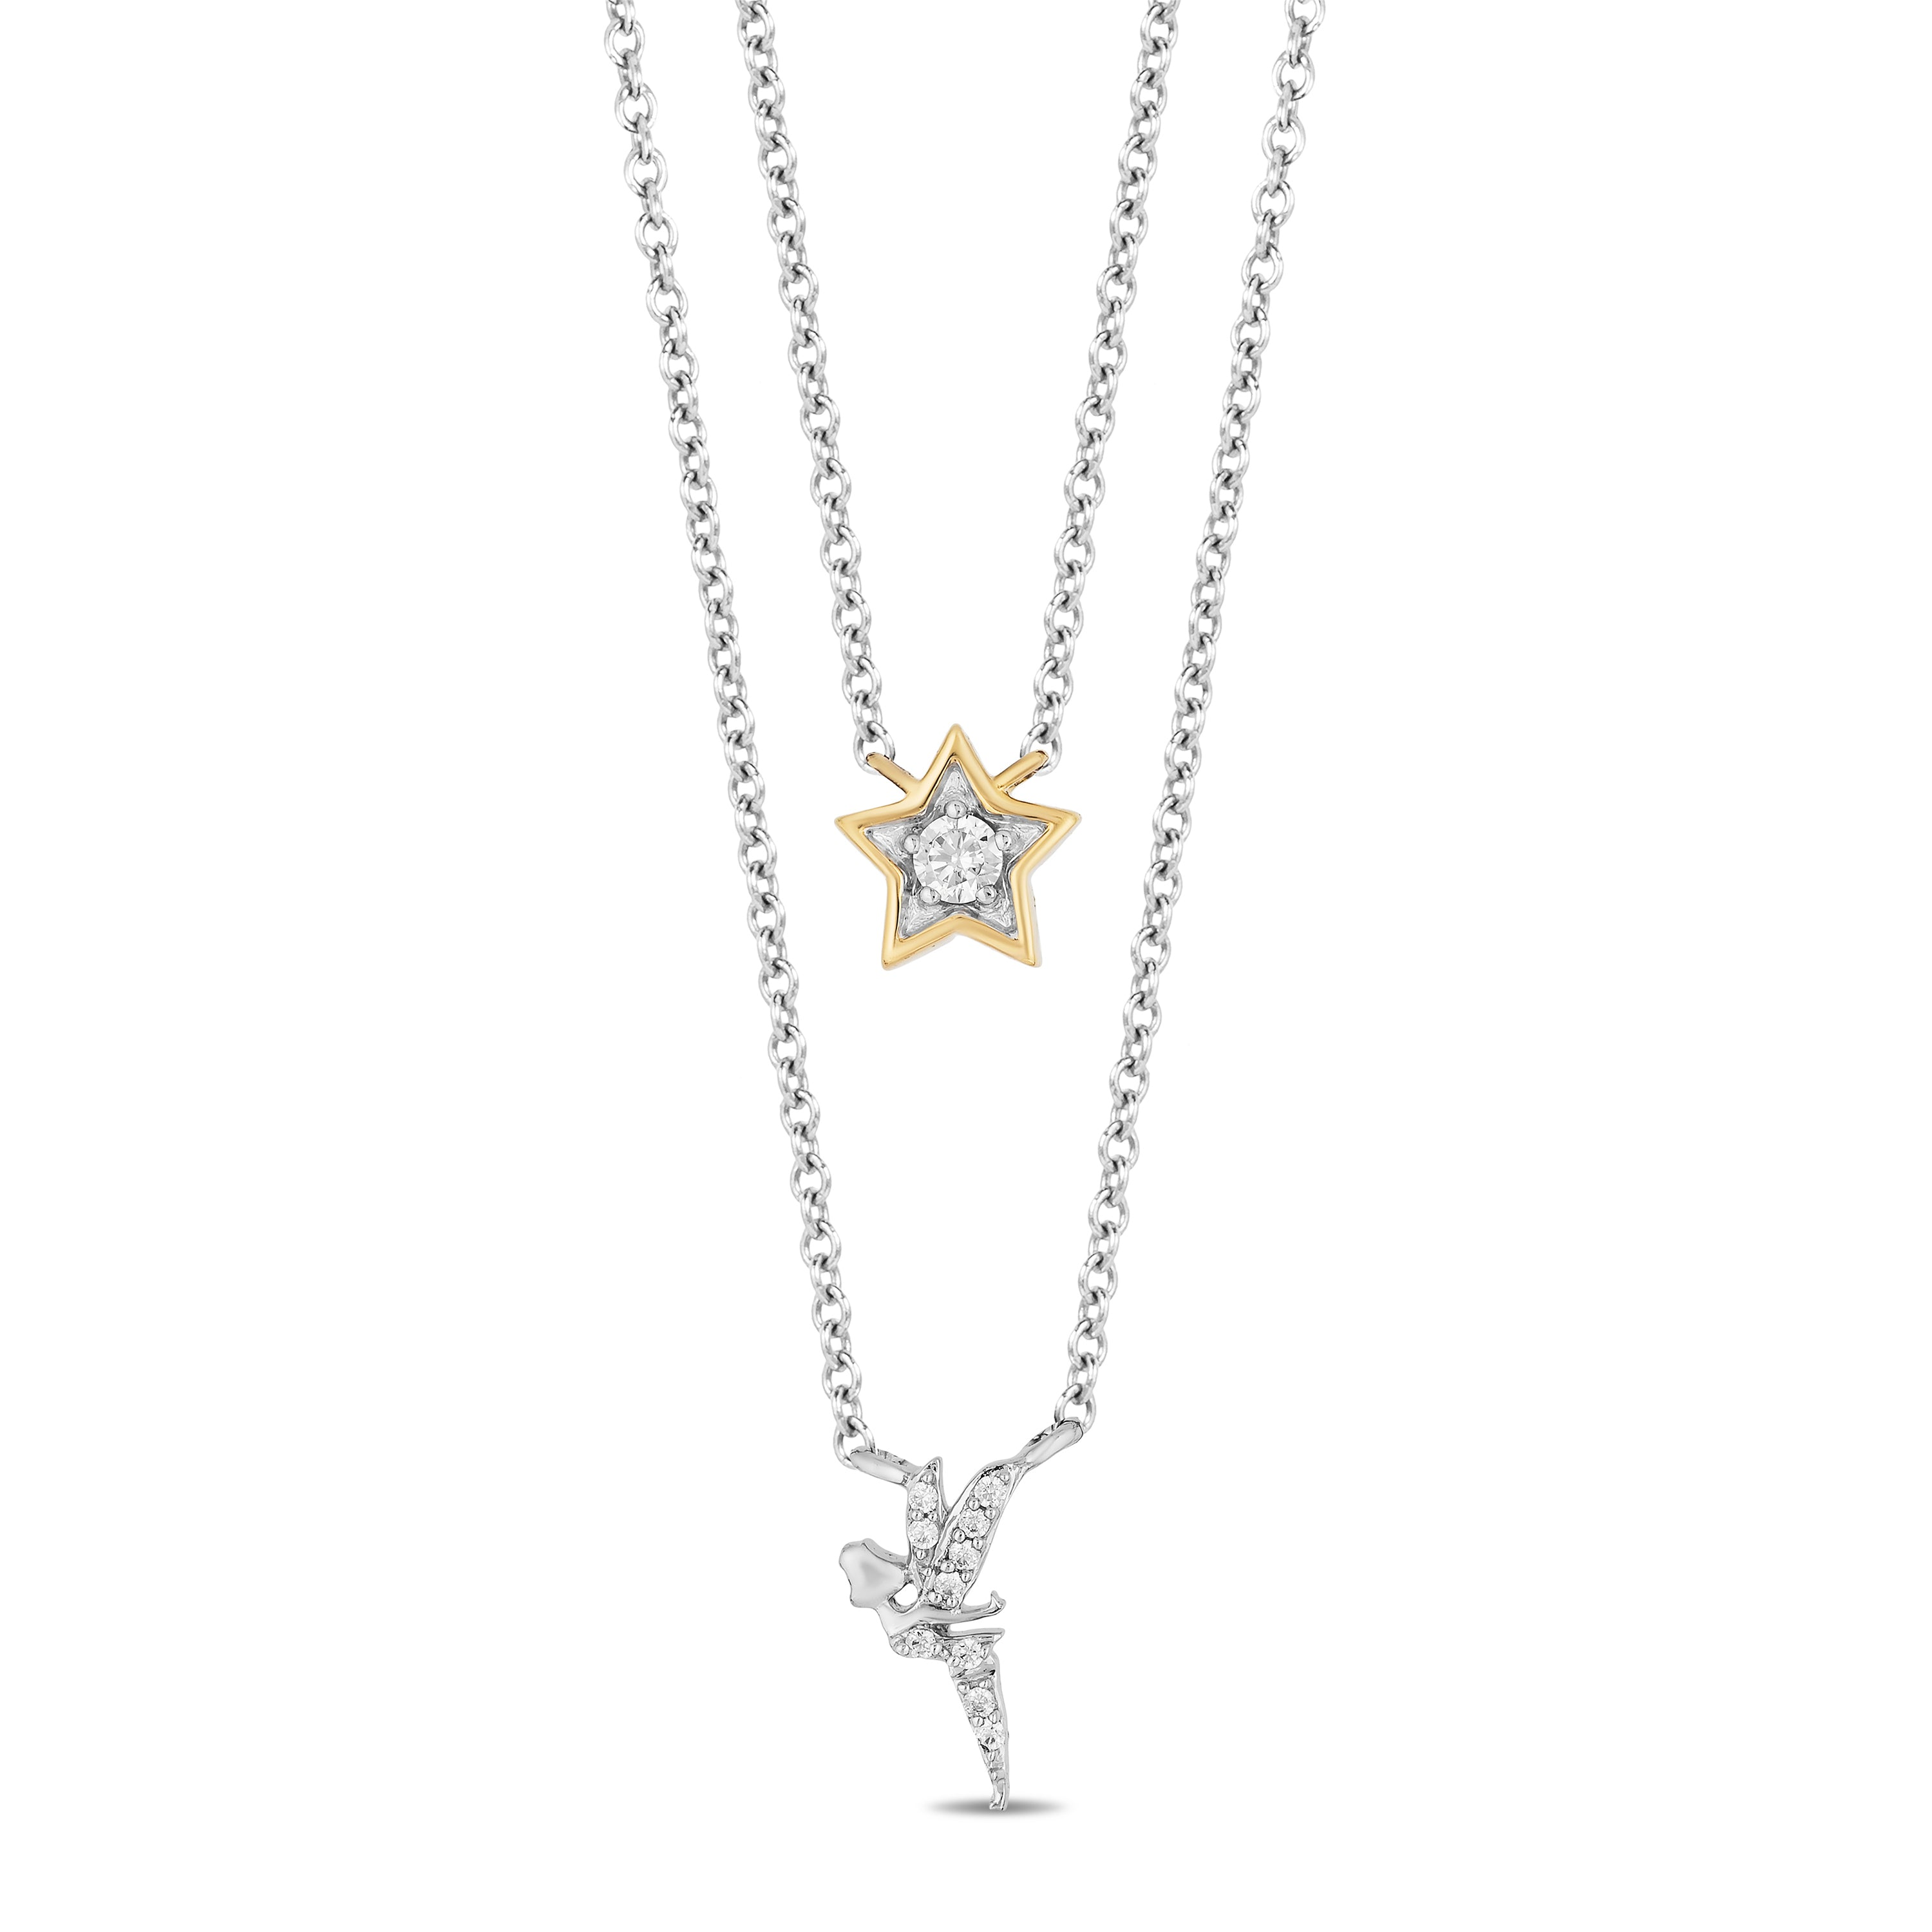 enchanted_disney-tinker-bell_double_chain_necklace-9k_yellow_gold_and_sterling_silver_0.10CTTW_1